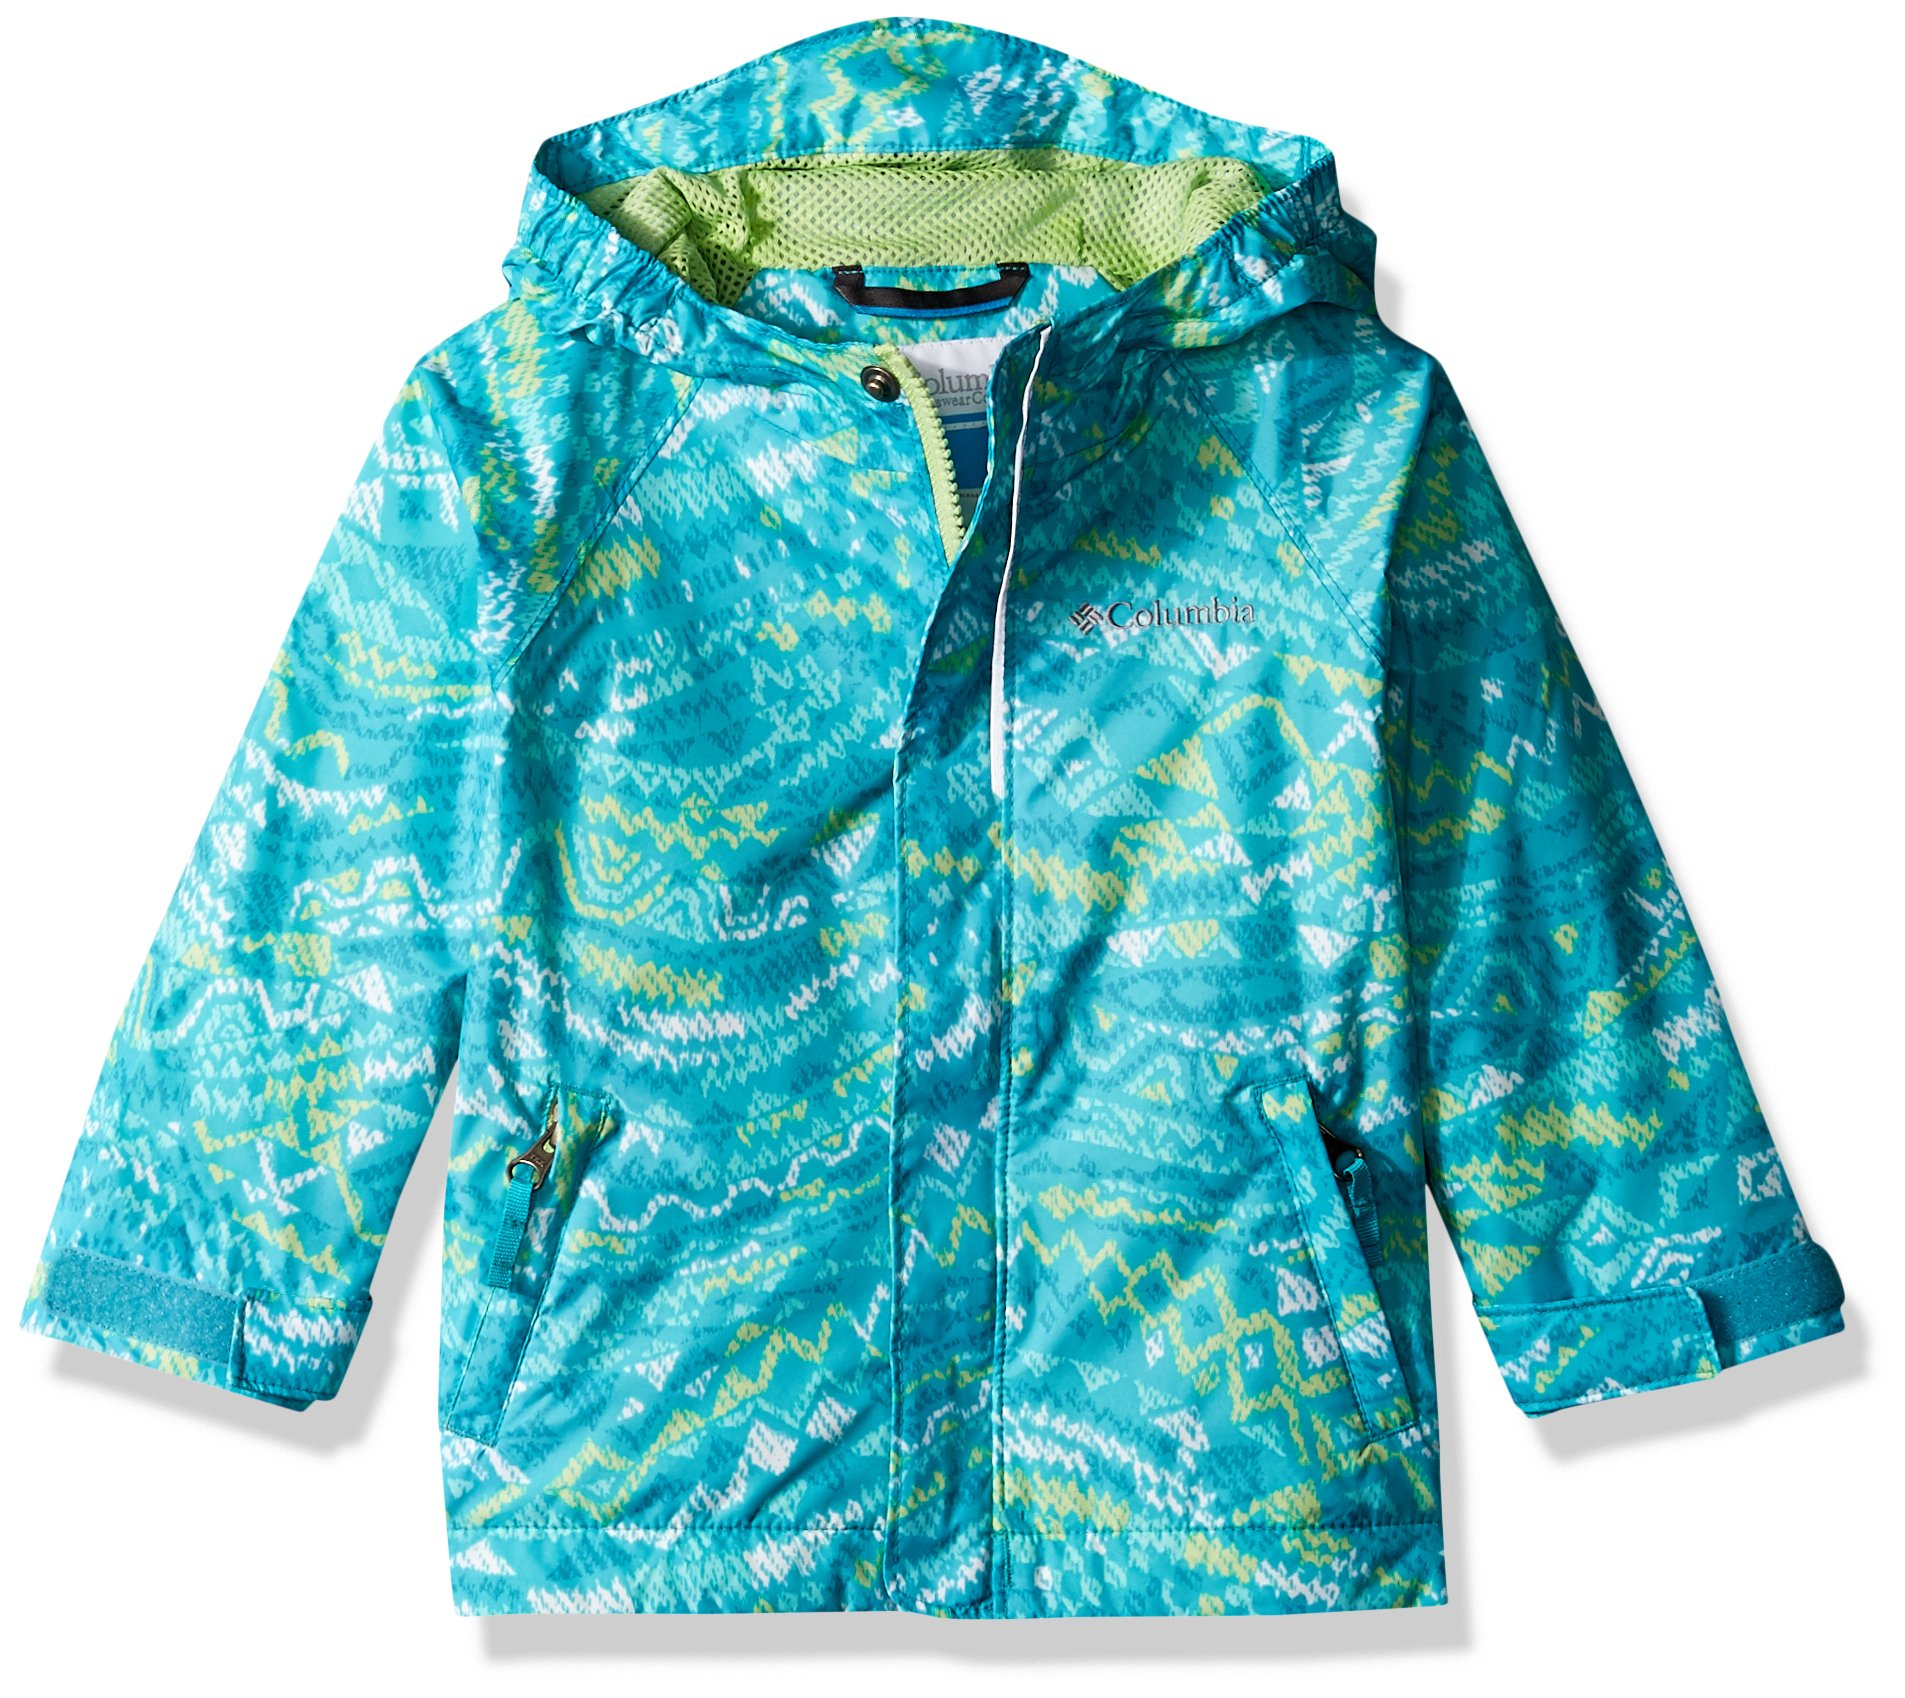 Columbia Kids' Toddler Fast and Curious Rain Jacket, Geyser Wave, 4T by Columbia